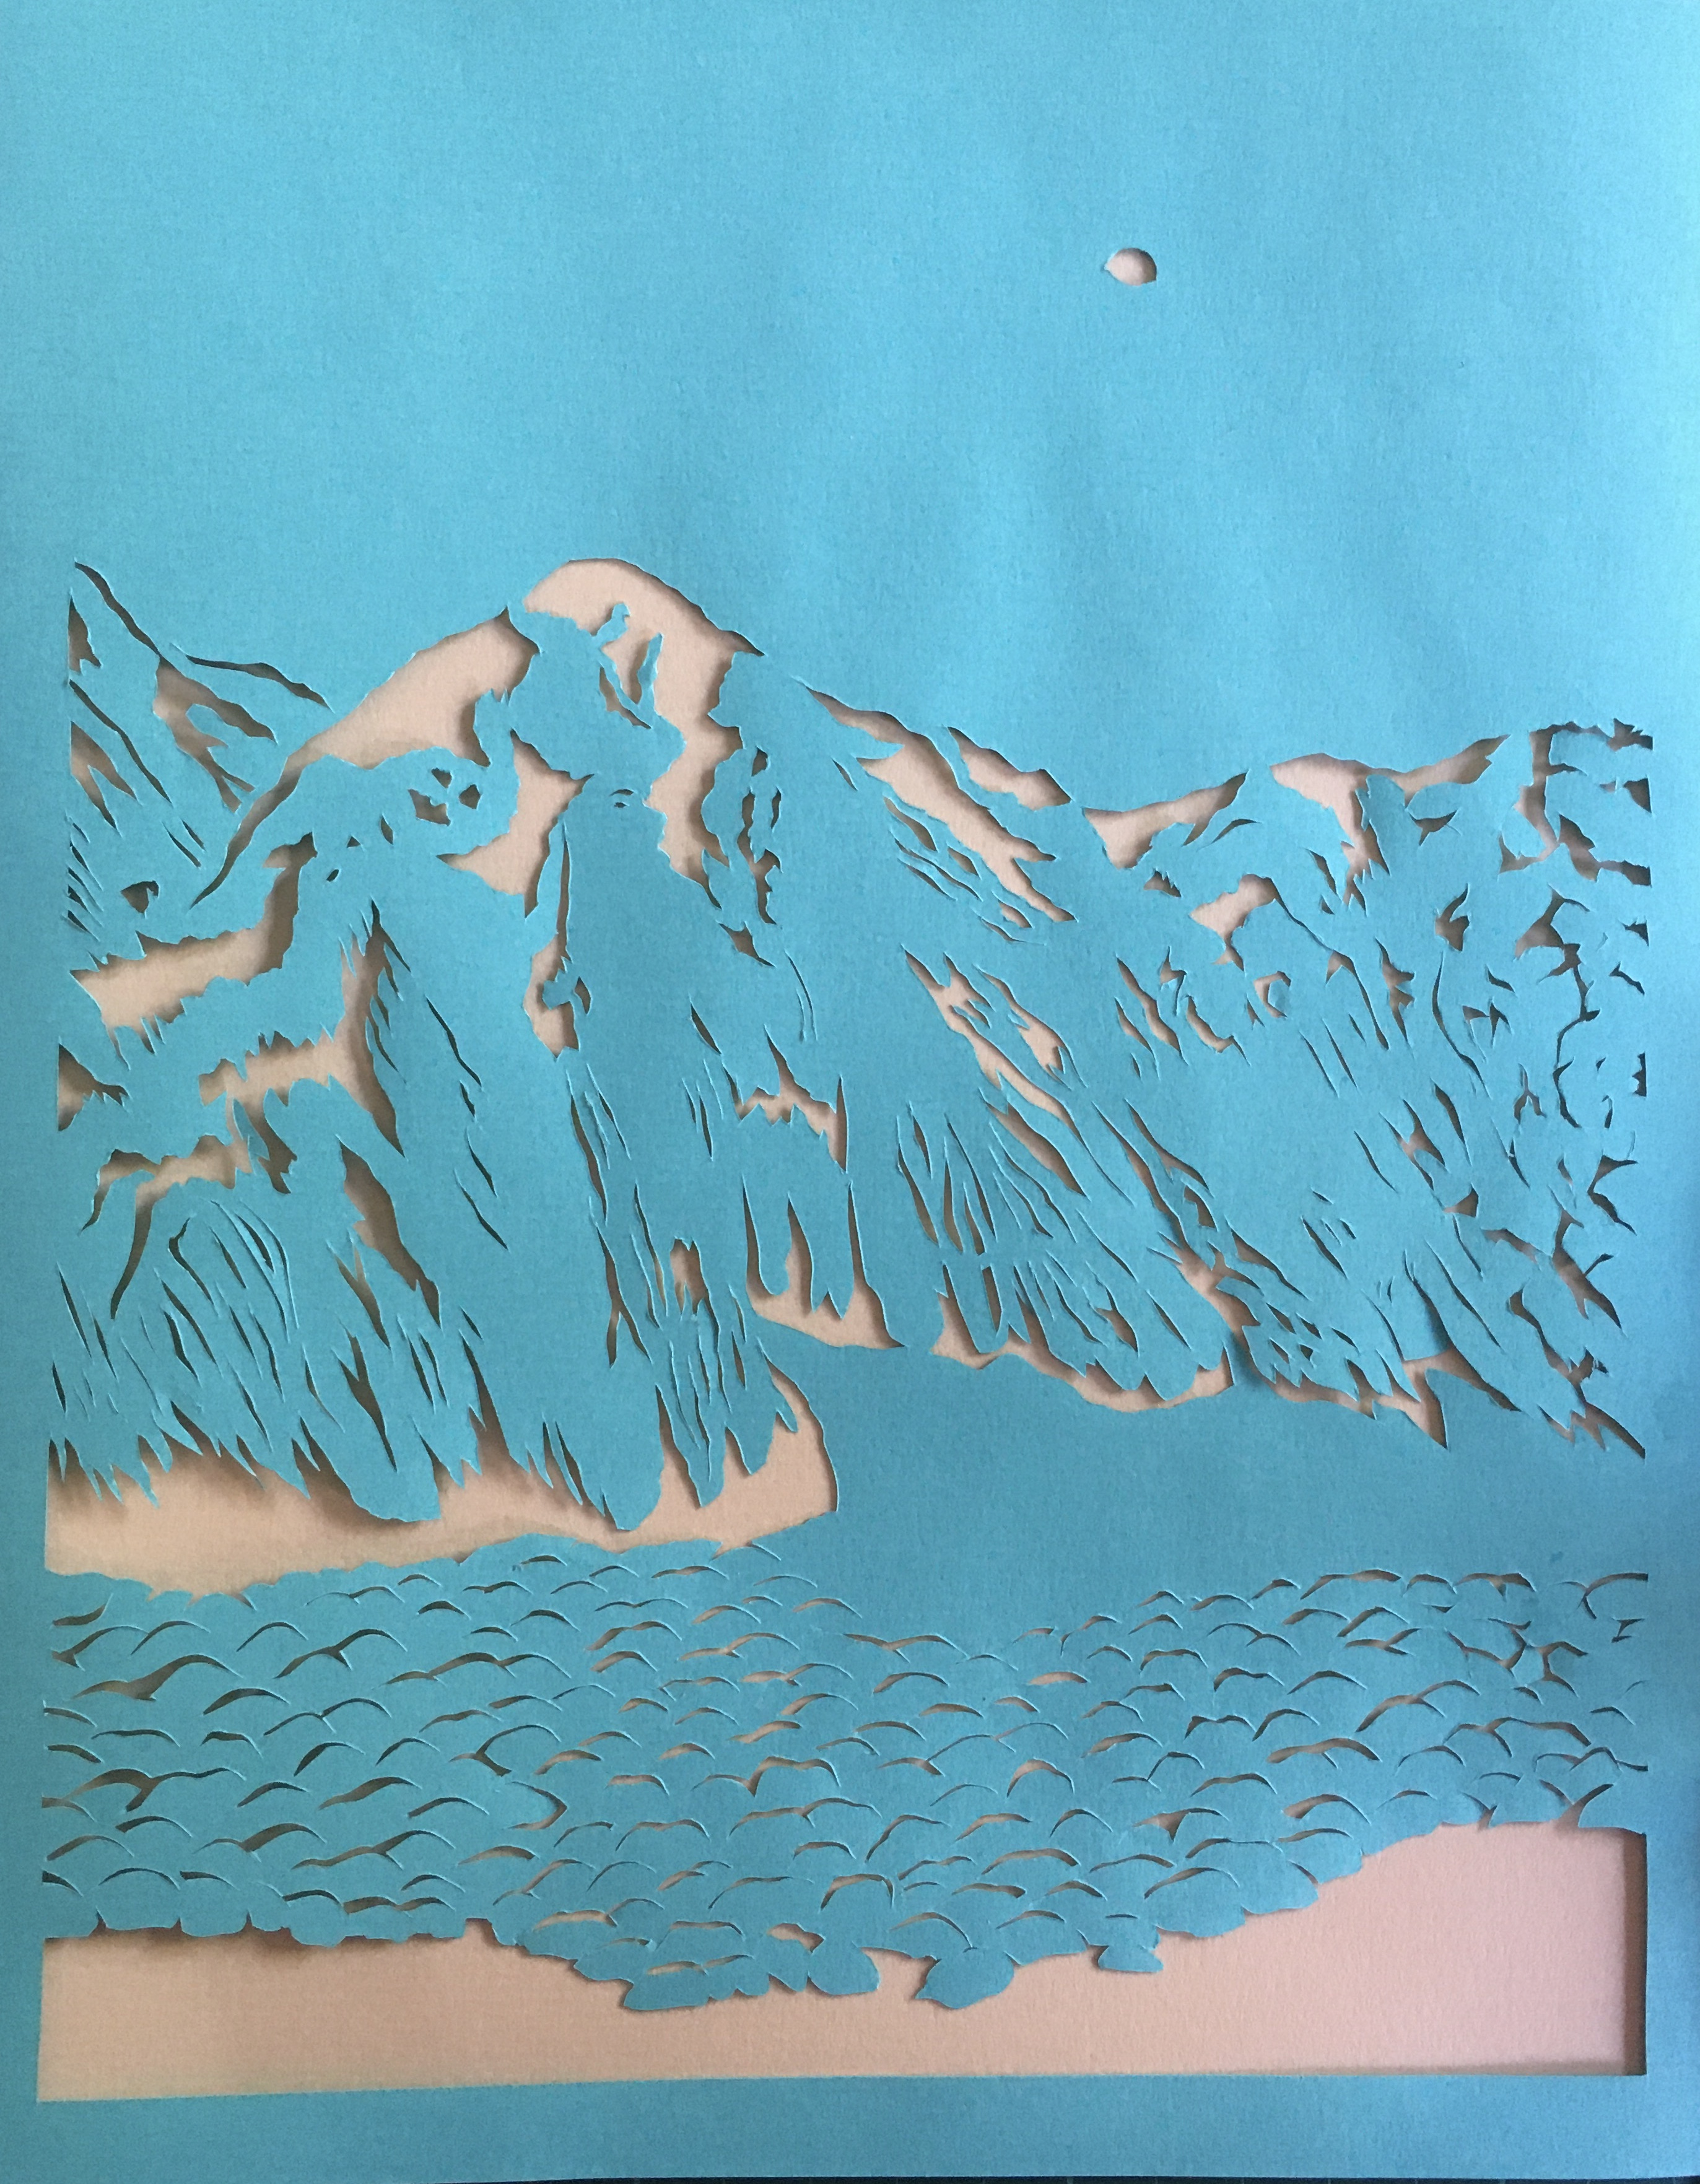 cliff scene created by cutting details out of one piece of paper